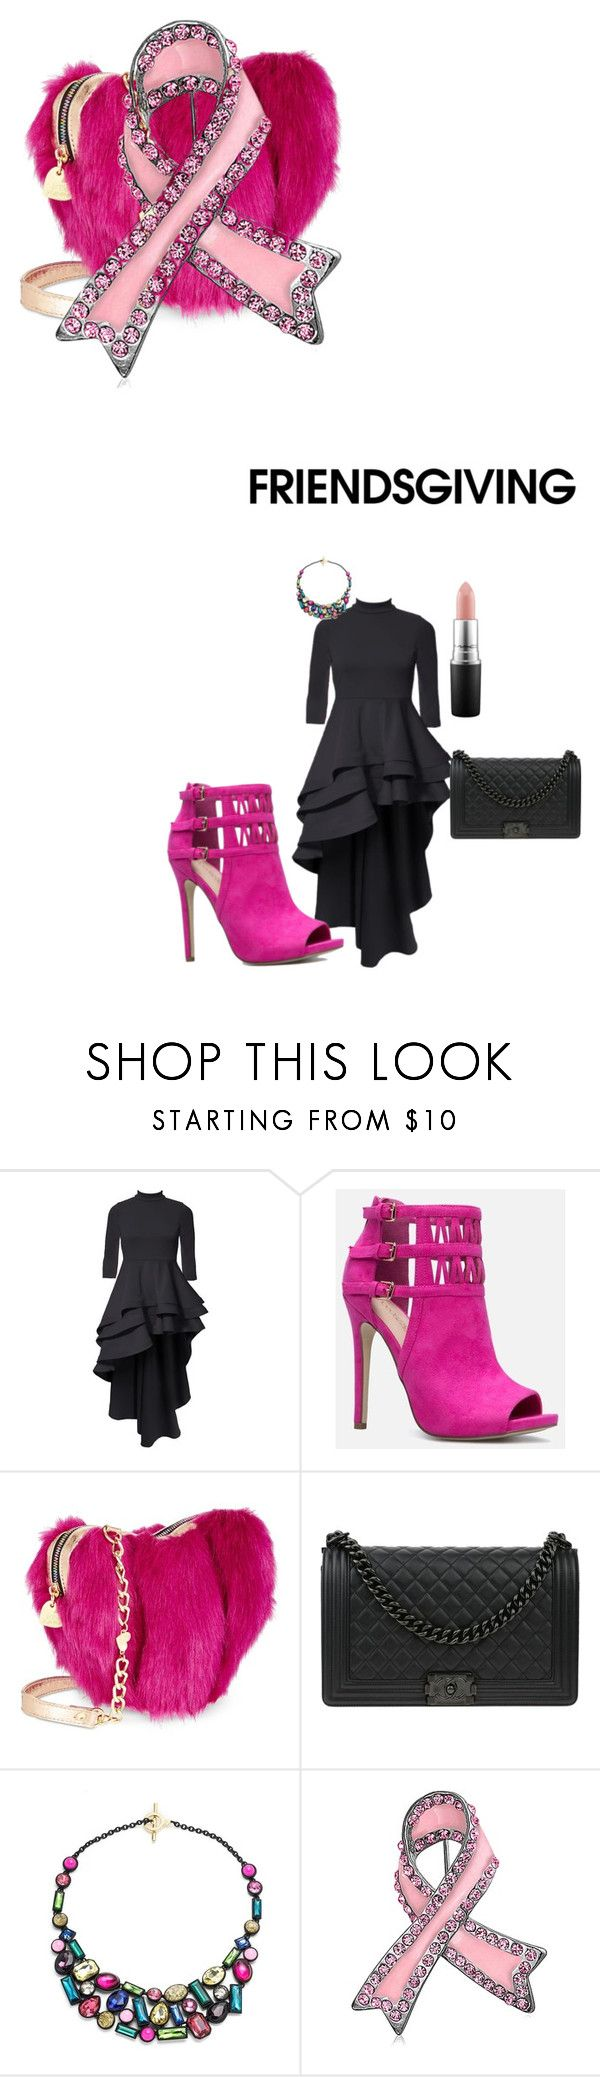 """""""plus size fashion"""" by pinkpearls44 on Polyvore featuring JustFab, Betsey Johnson, Chanel, Trina Turk, Bling Jewelry and MAC Cosmetics"""